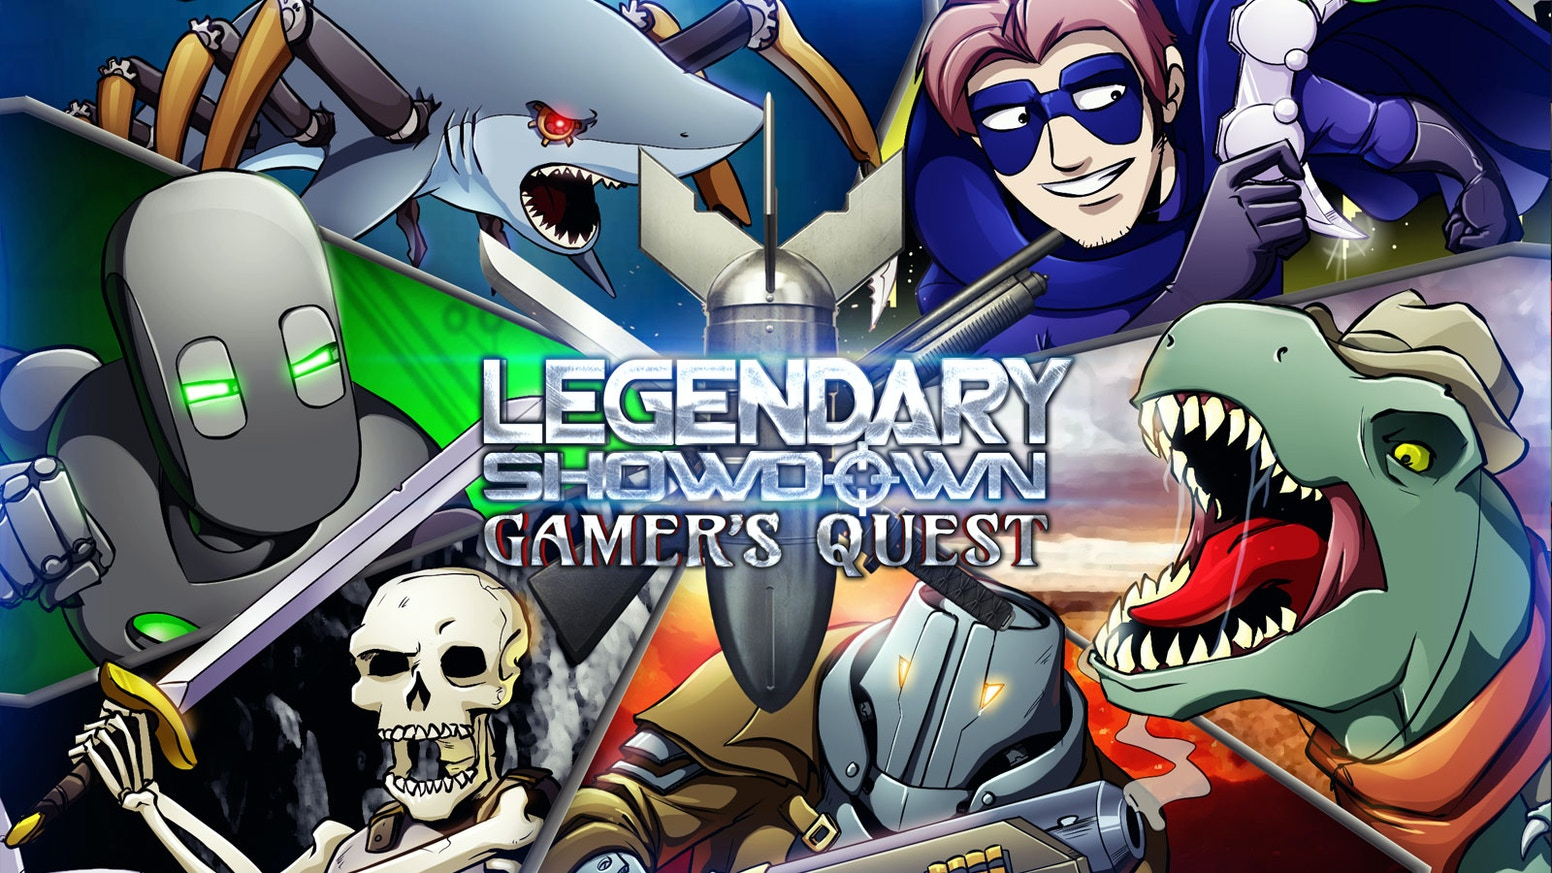 Gamer's Quest features comically epic battles with your favorite avatars, bounty hunters, and skeleton warriors from Ctrl+Alt+Del